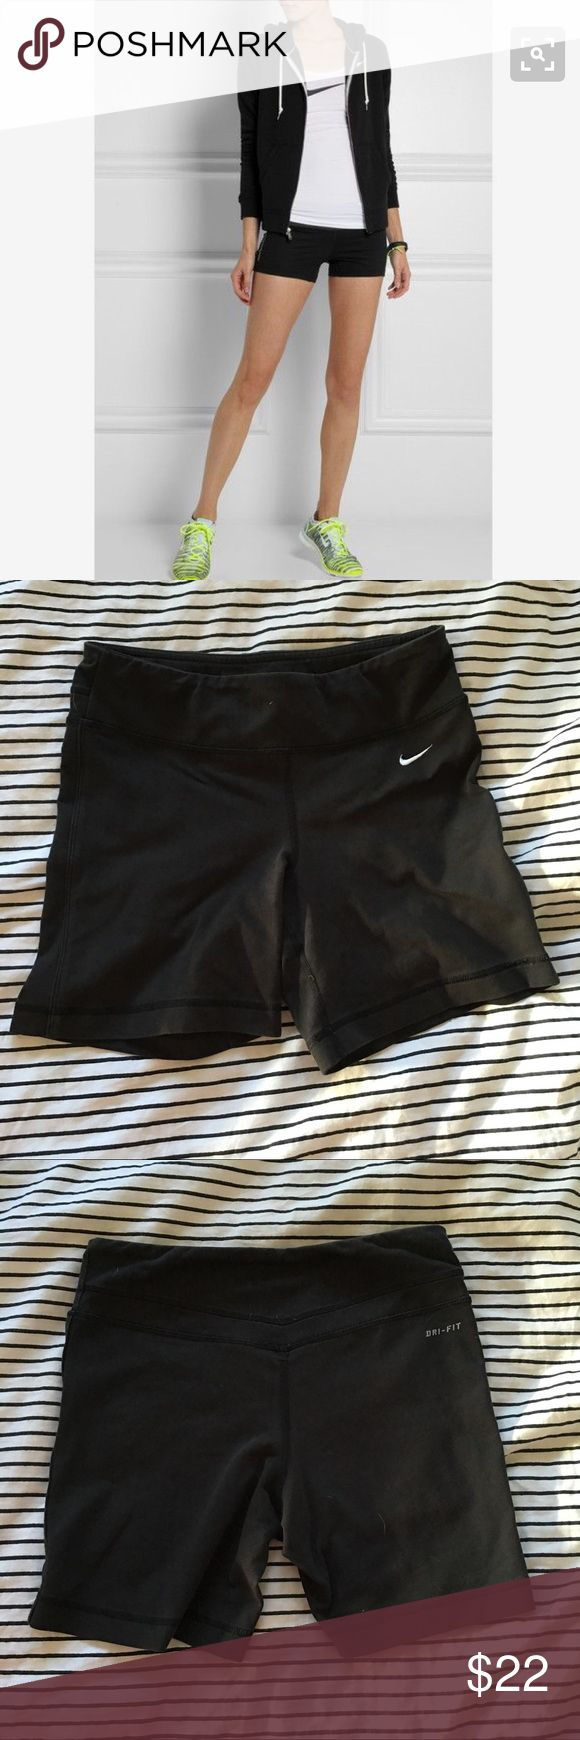 Nike Dri Fit Stretch Woven Running Shorts Black XS Nike Dri Fit Stretch Woven Running Shorts Black XS.   Perfect condition no holes or stains Nike Shorts